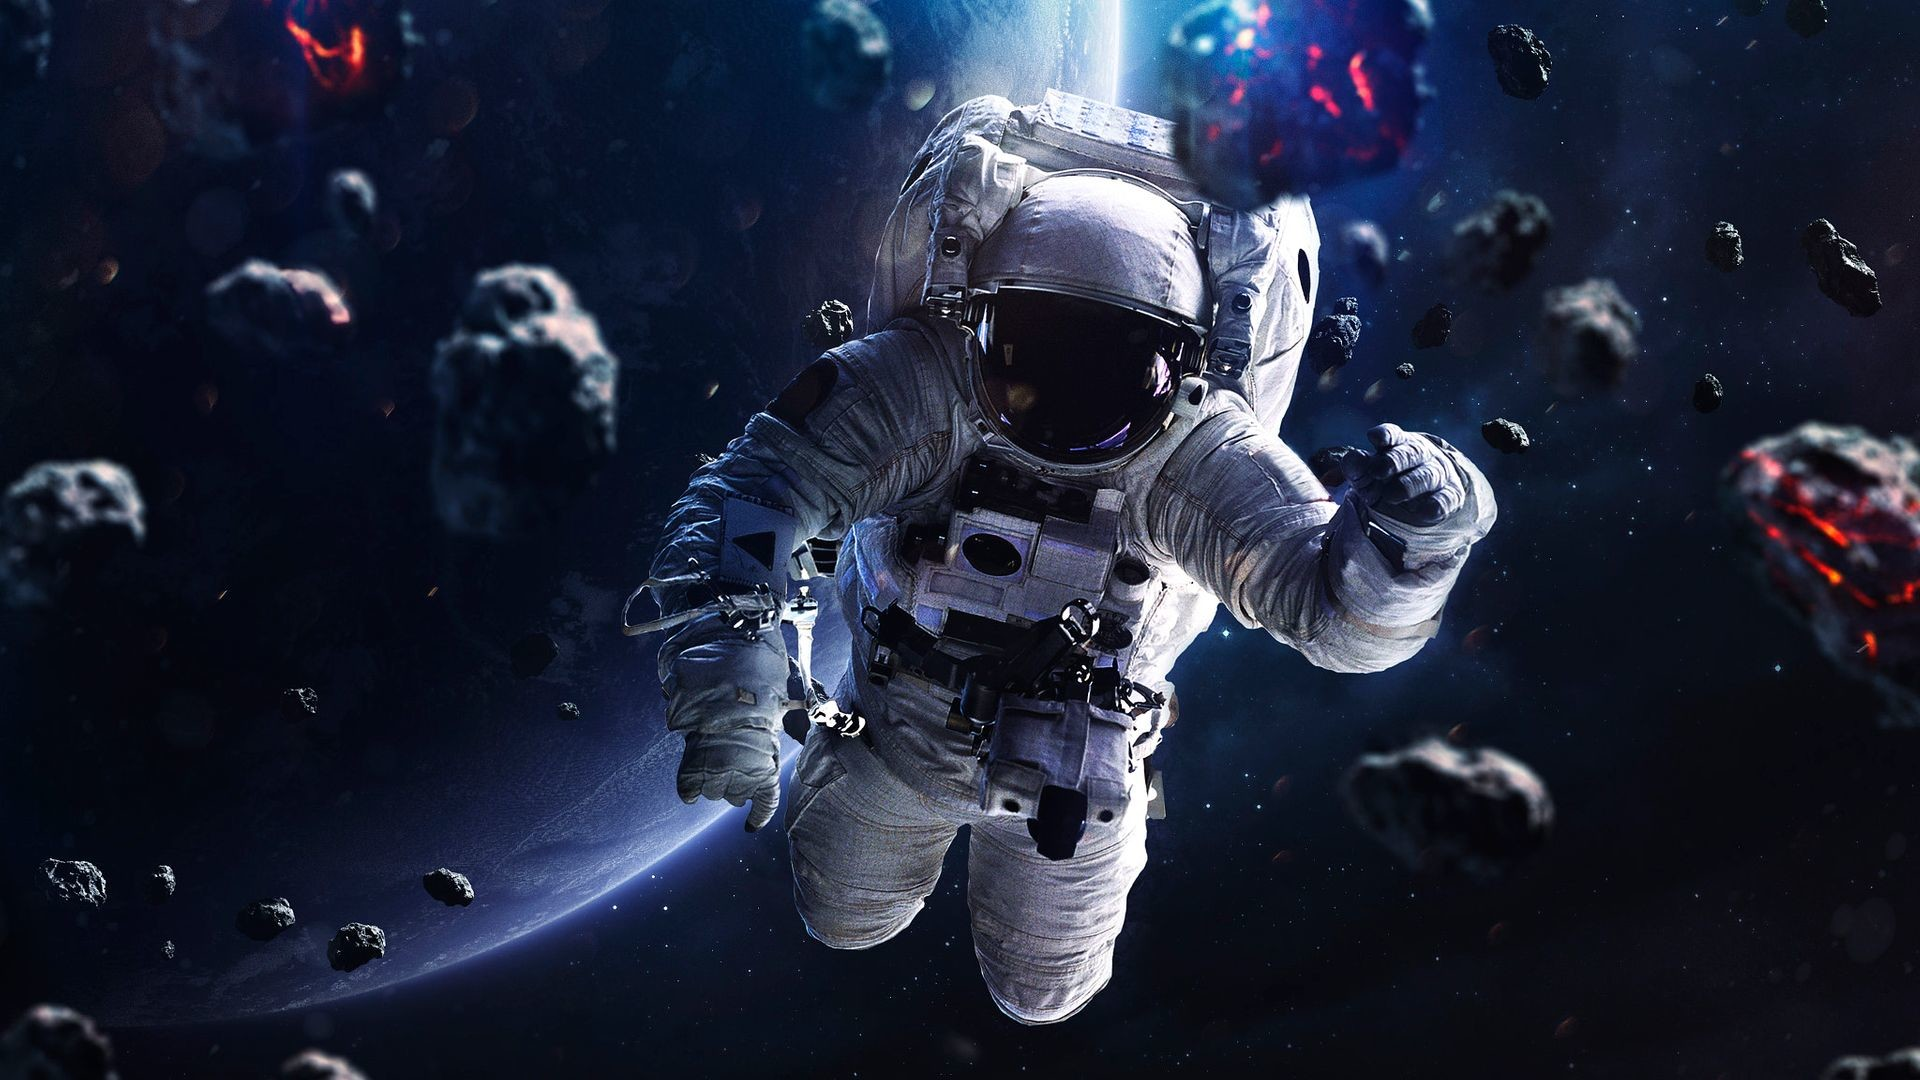 Res: 1920x1080, Space Astronaut Wallpaper